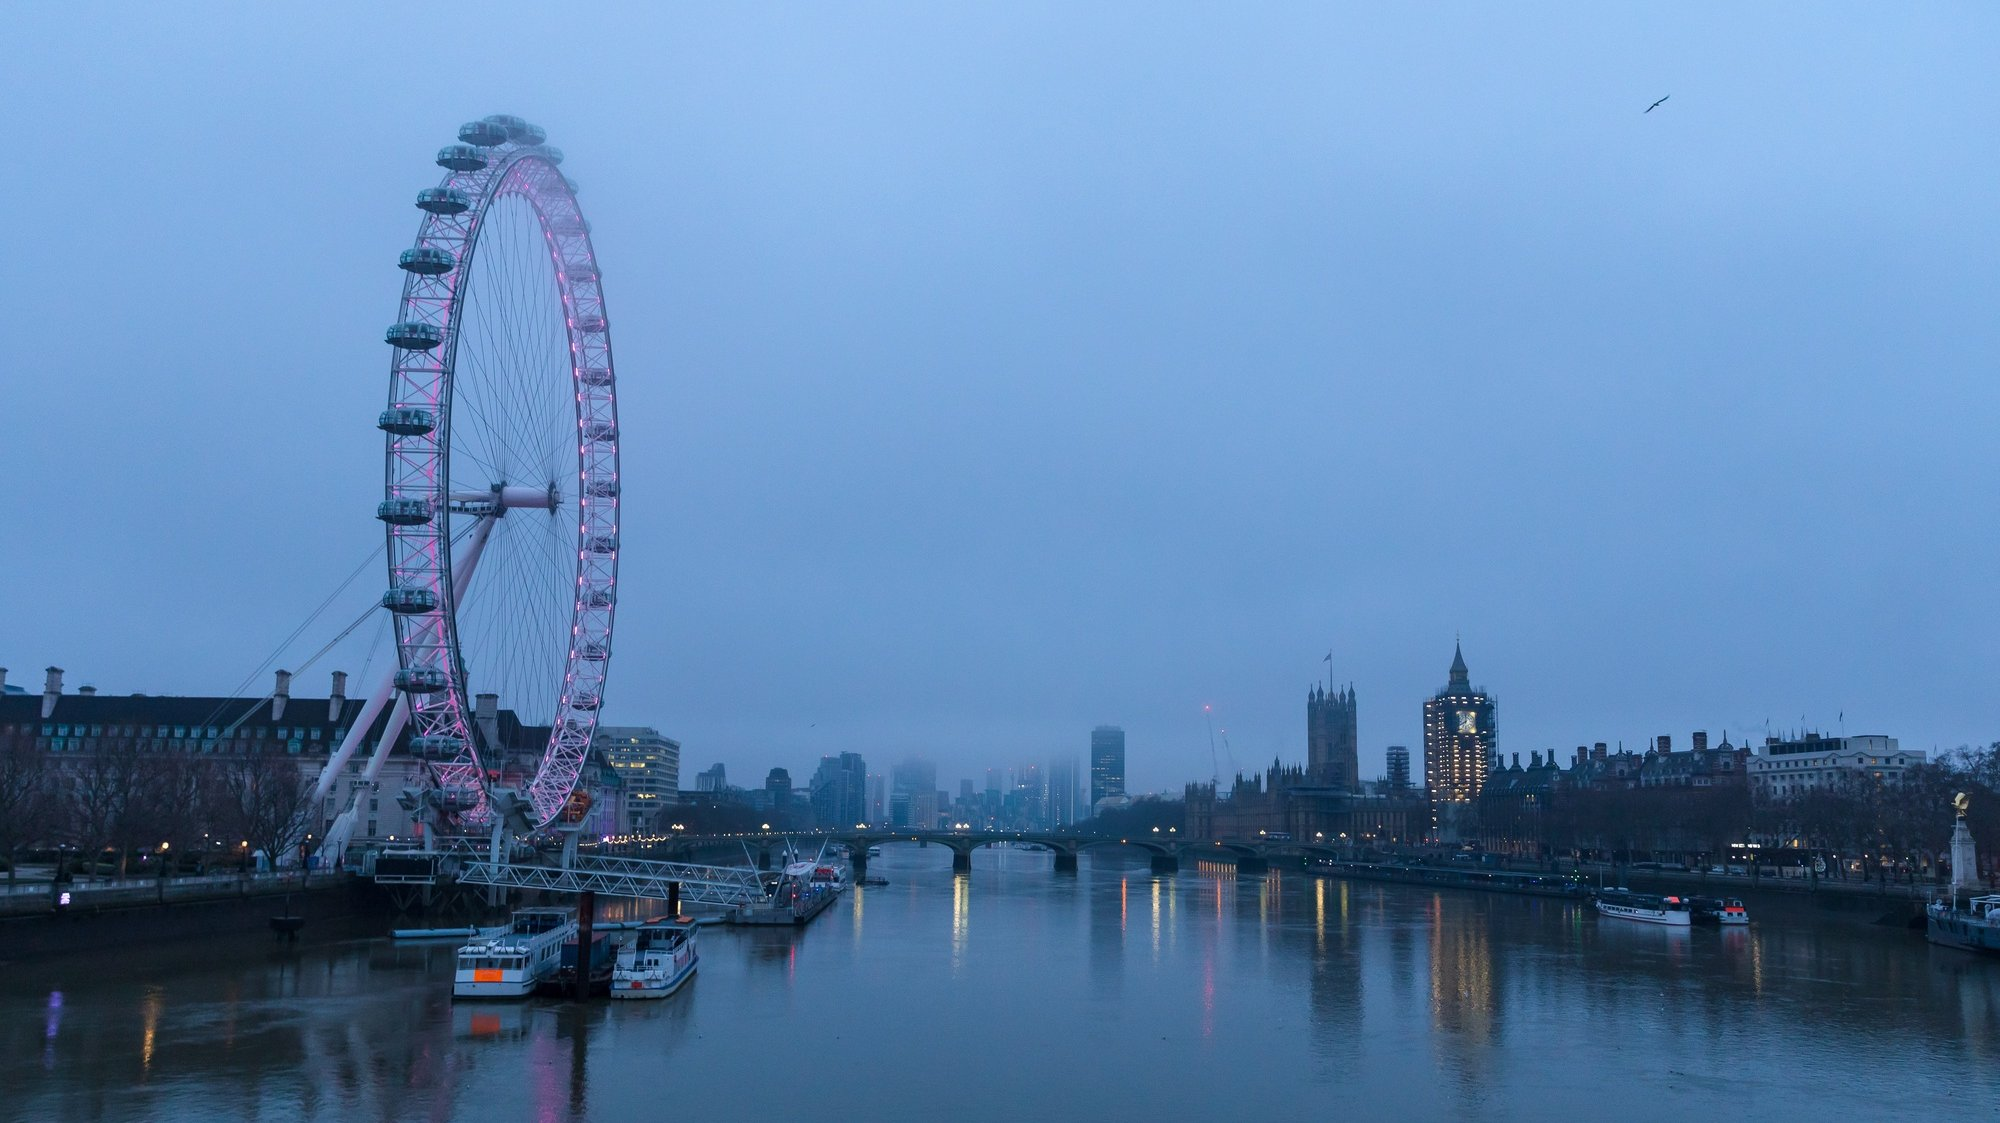 epa08913916 The London Eye and Big Ben on the River Thames seen at dawn in Westminster, London, Britain, 01 January 2021. Britain left the European Union at 11pm on 31 December 2020.  EPA/VICKIE FLORES